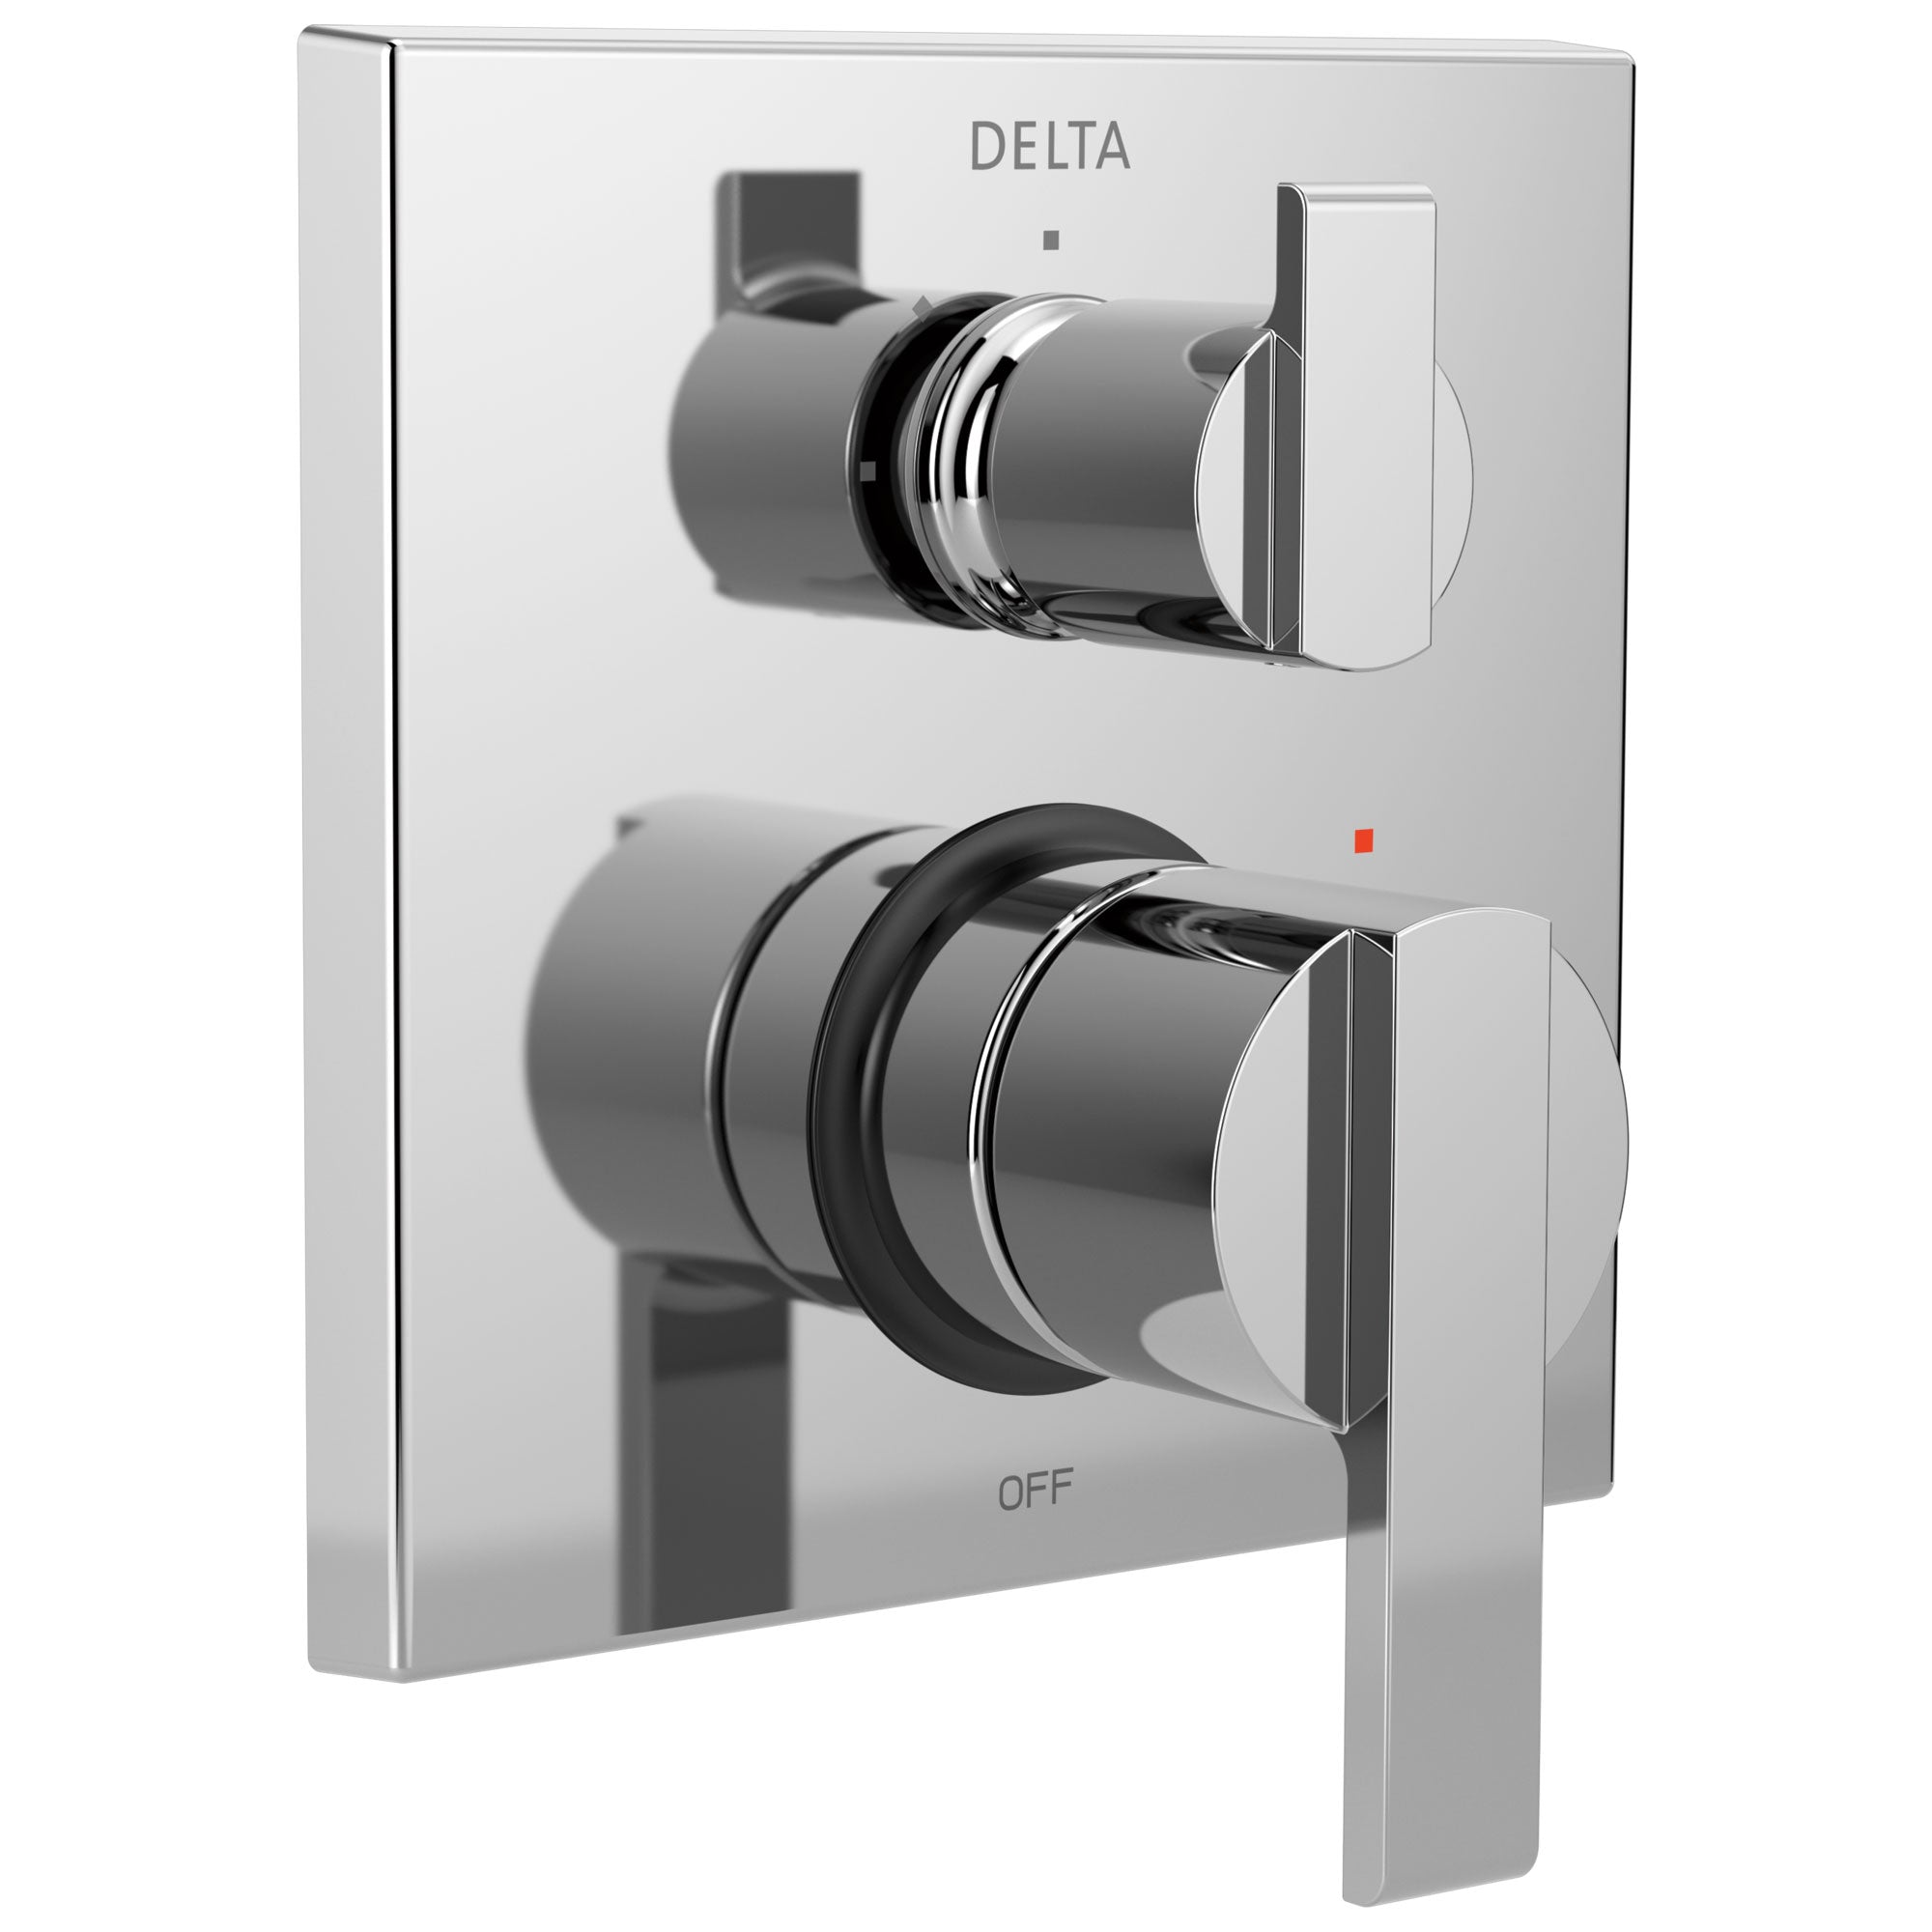 Delta Ara Collection Chrome Modern Monitor 14 Shower Faucet Valve Trim Control Handle with 3-Setting Integrated Diverter (Requires Valve) DT24867